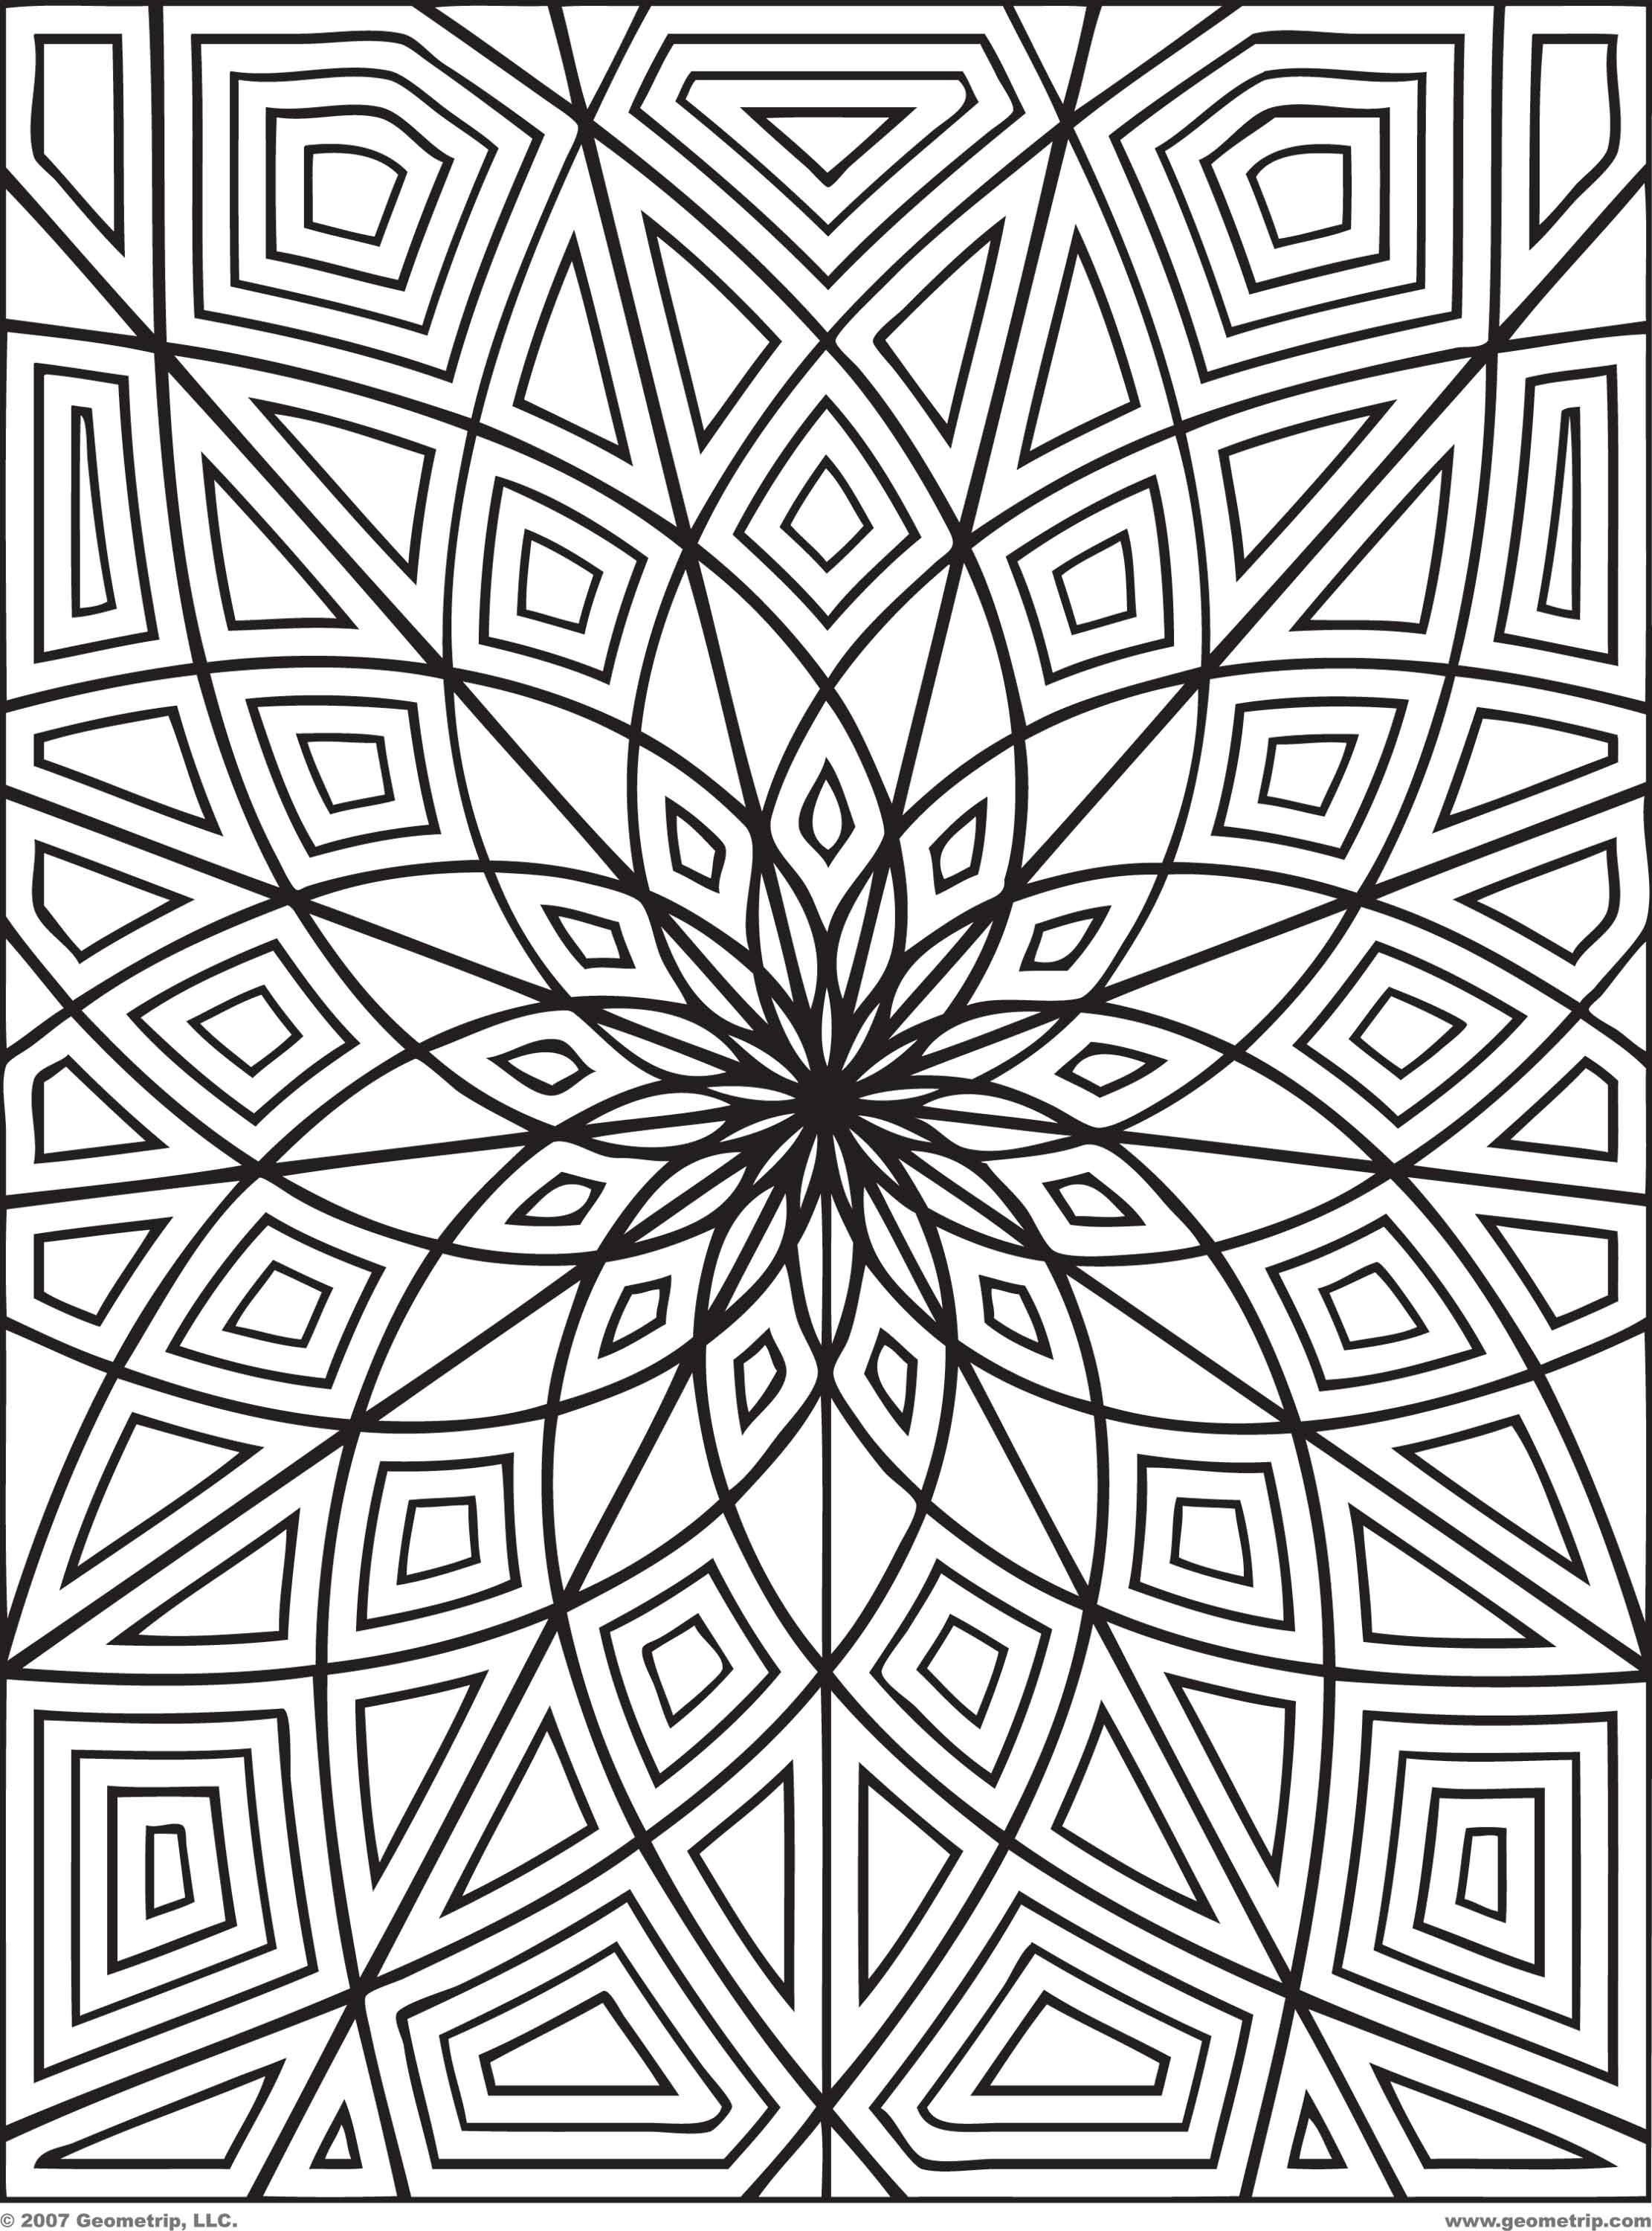 Adult Cute Geometric Flower Coloring Pages Images best adult pattern coloring pages printable for all ages images